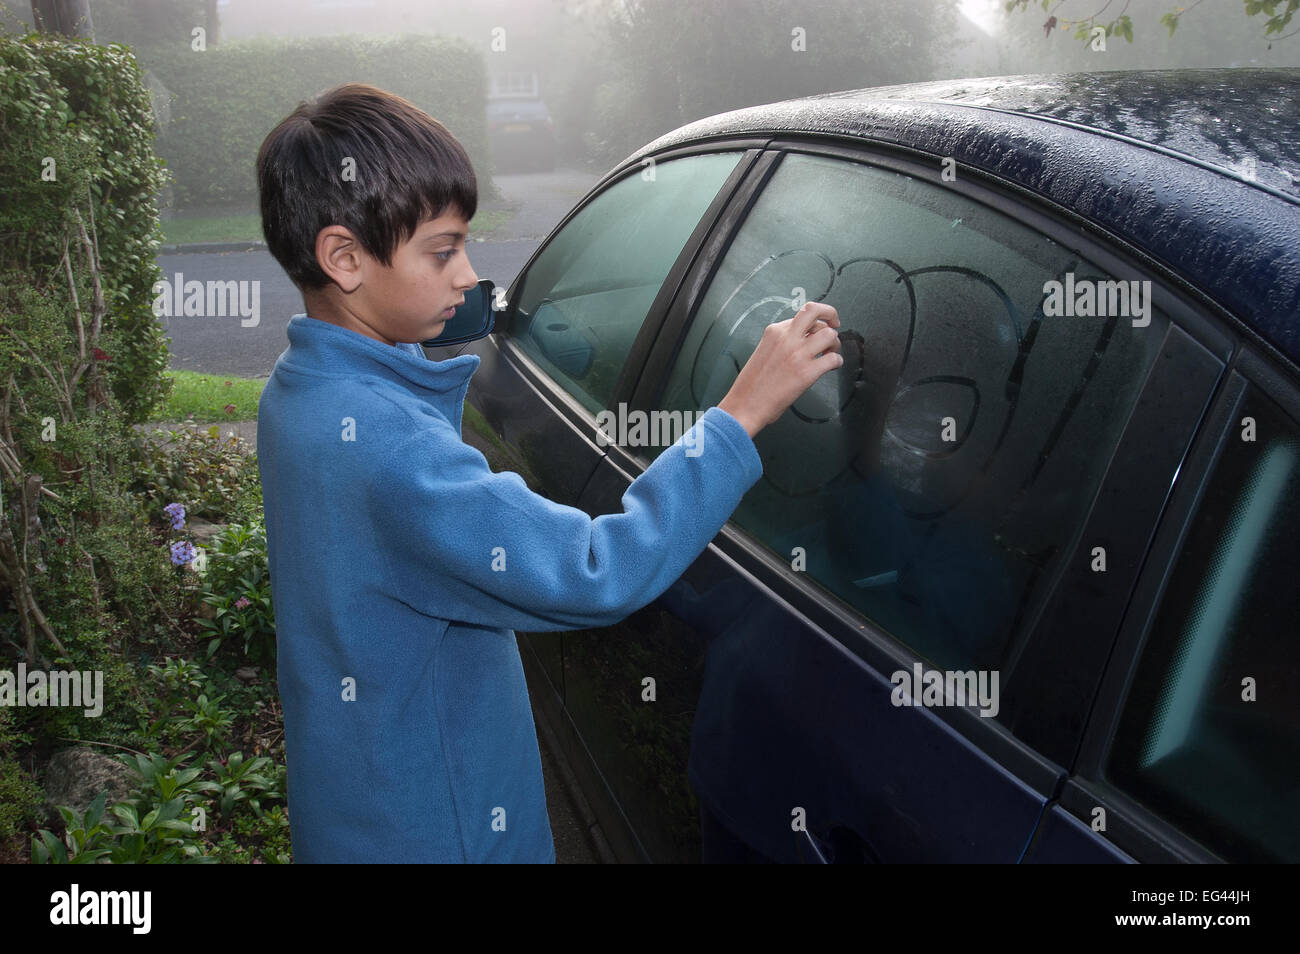 Young primary school boy drawing in and on car window on damp misty morning before school run - Stock Image